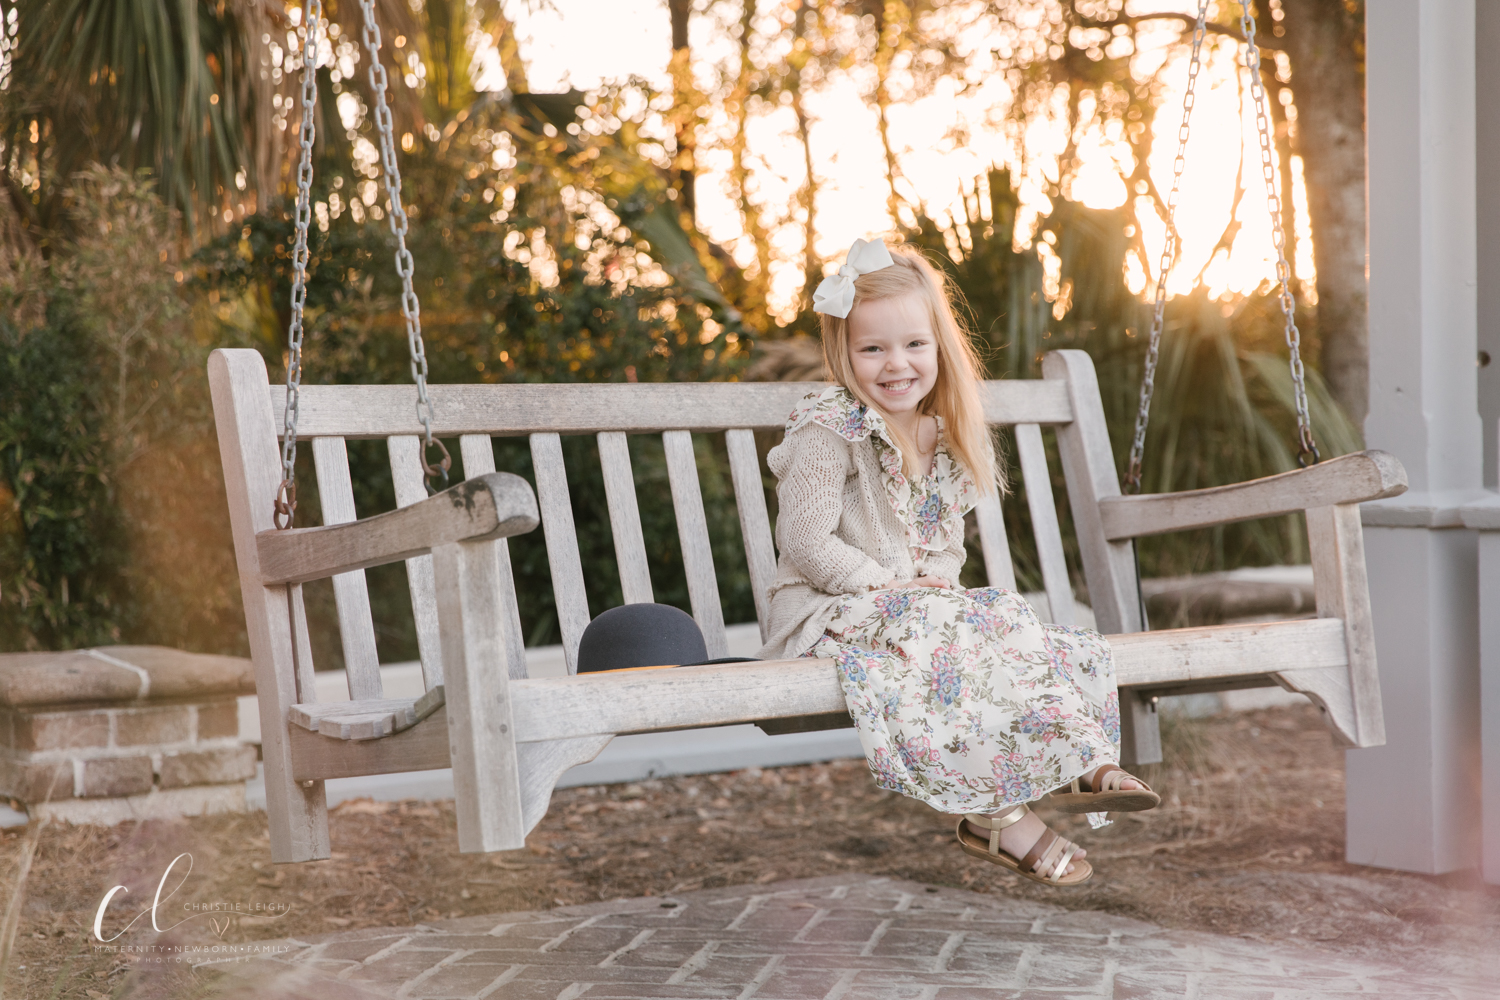 Outdoor_beach_birthday_ _session_little_girl_turns_four_romantic_beach_themed_fourth_birthday_pictures_in_Hilton_Head_SC_by_child_and_family_photogrpaher_christie_leigh_photo-2.JPG